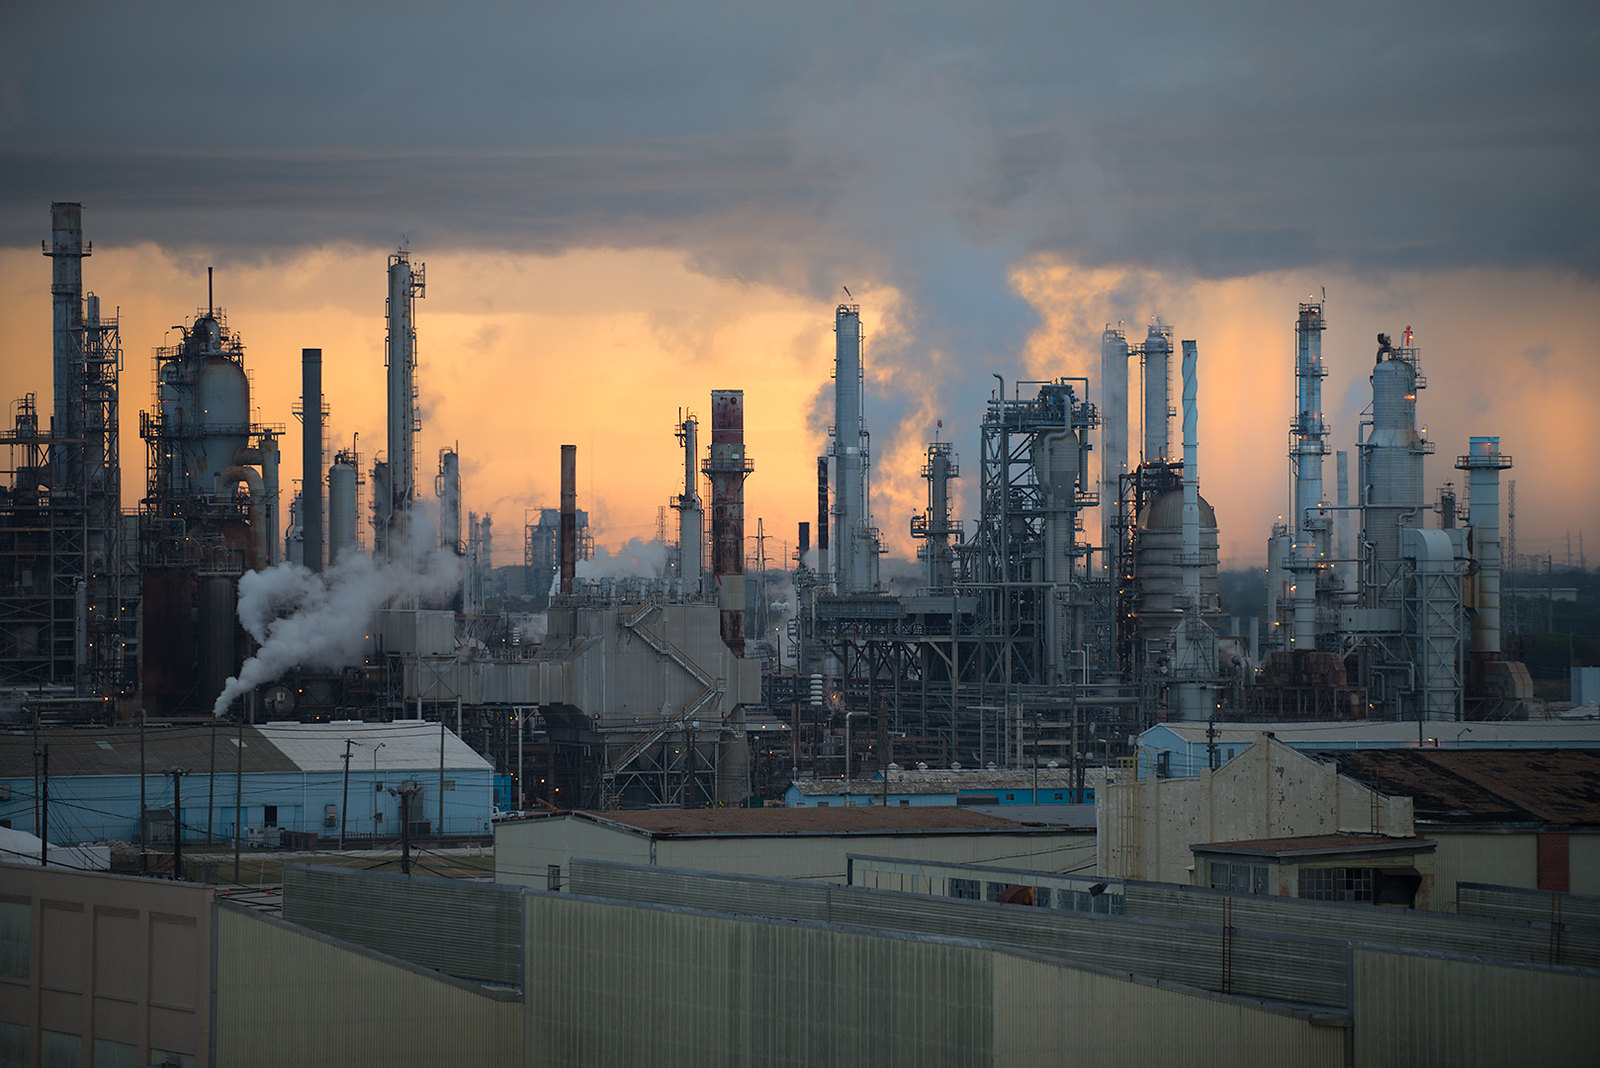 photo of petrochemical plant